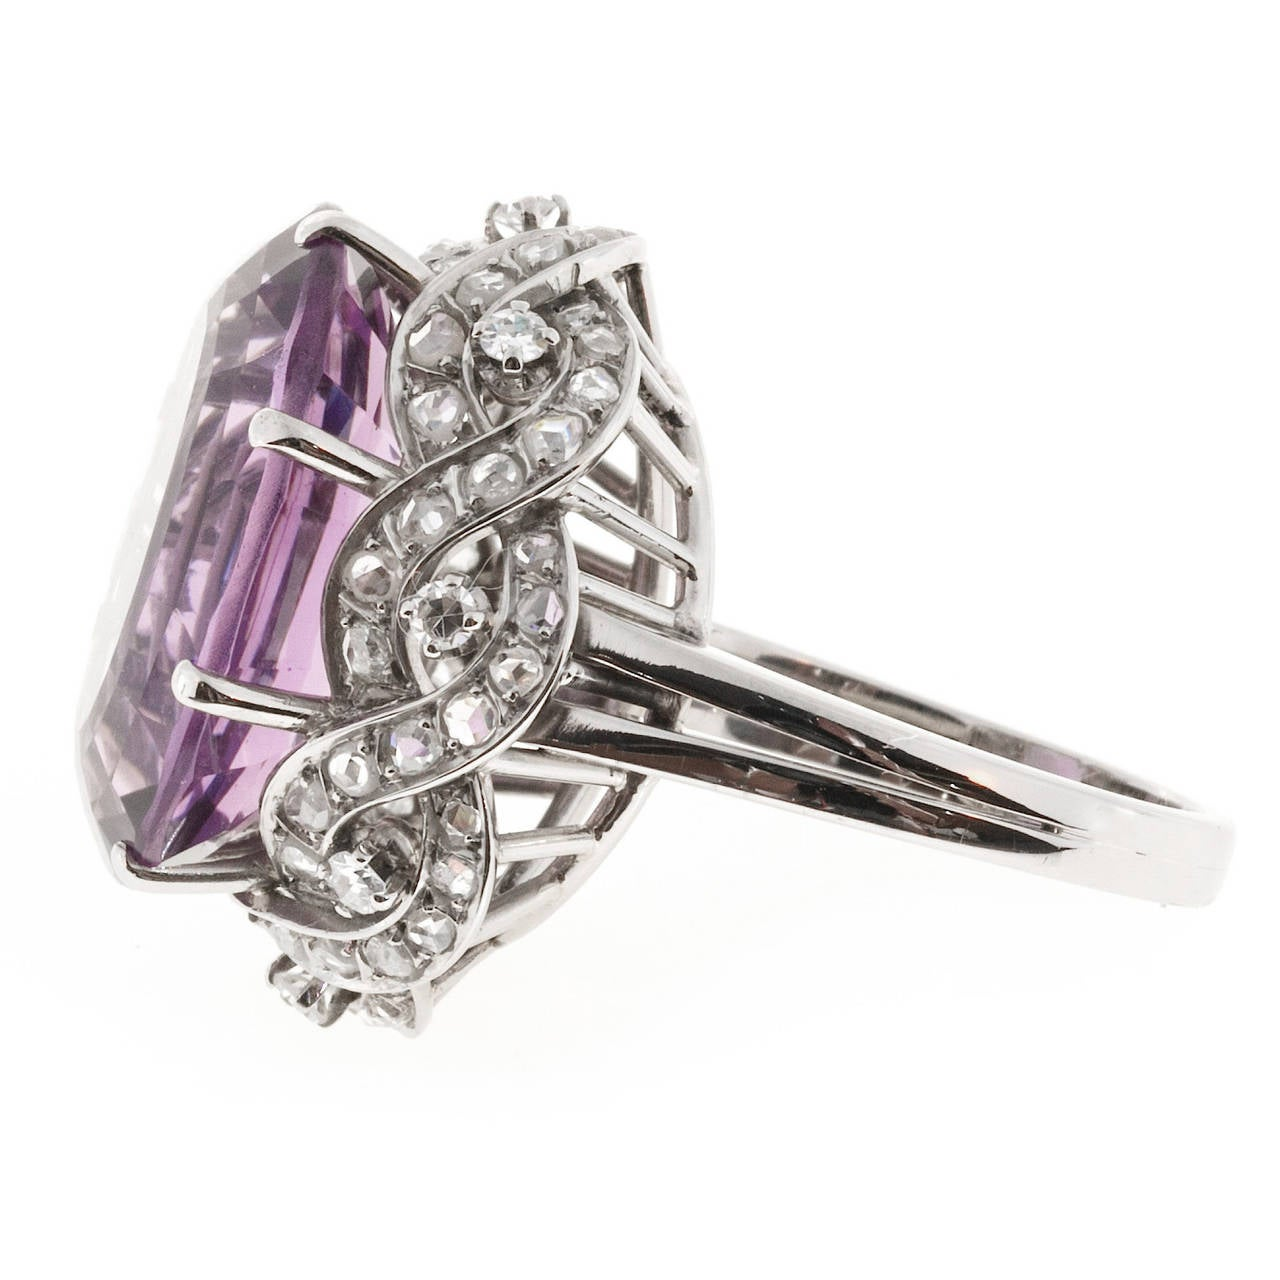 Women's Natural Amethyst Diamond Gold Cocktail Ring For Sale